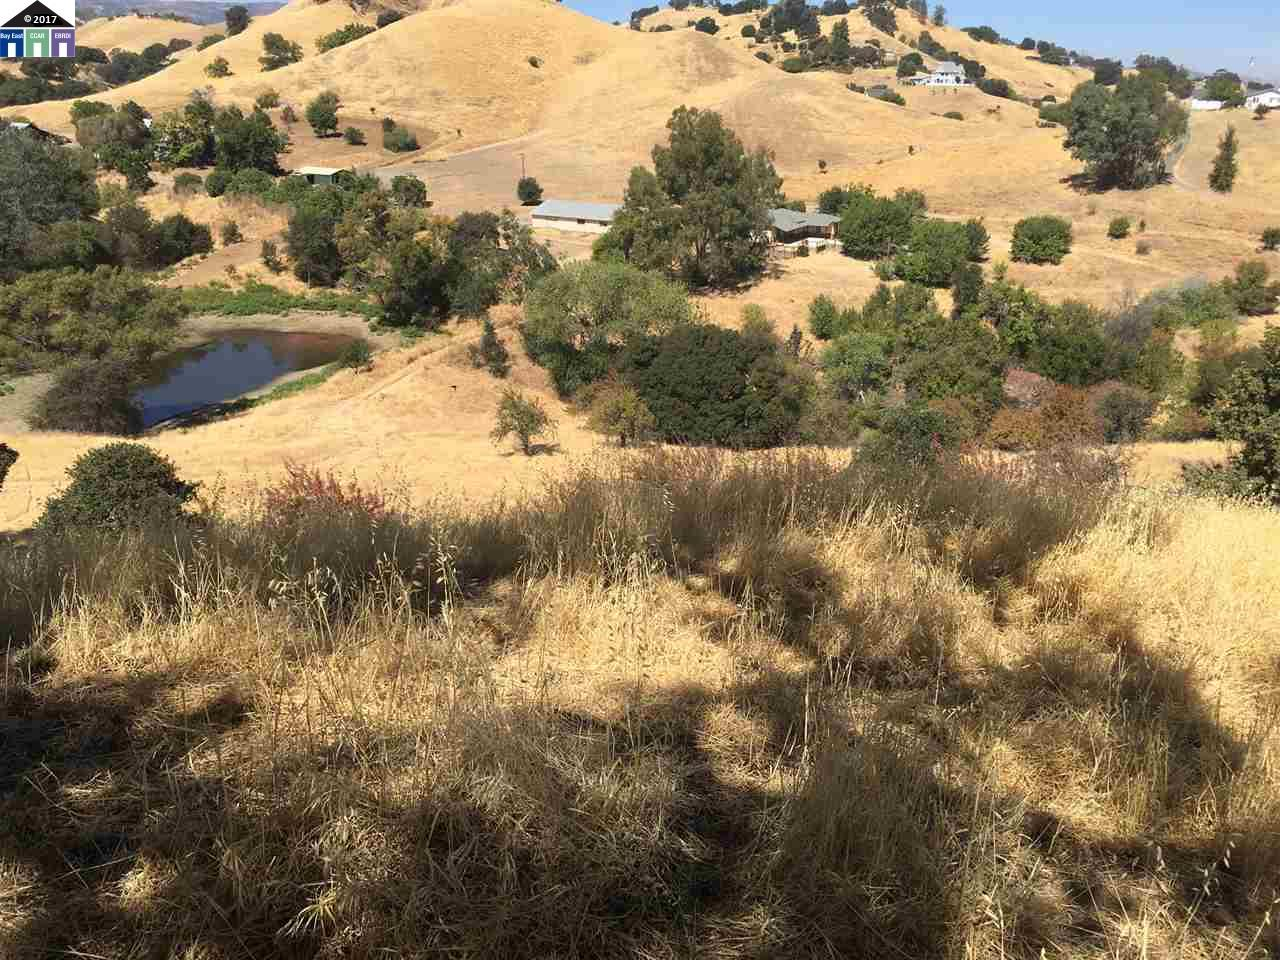 3980 scenic ranch lane, VACAVILLE, CA 95688